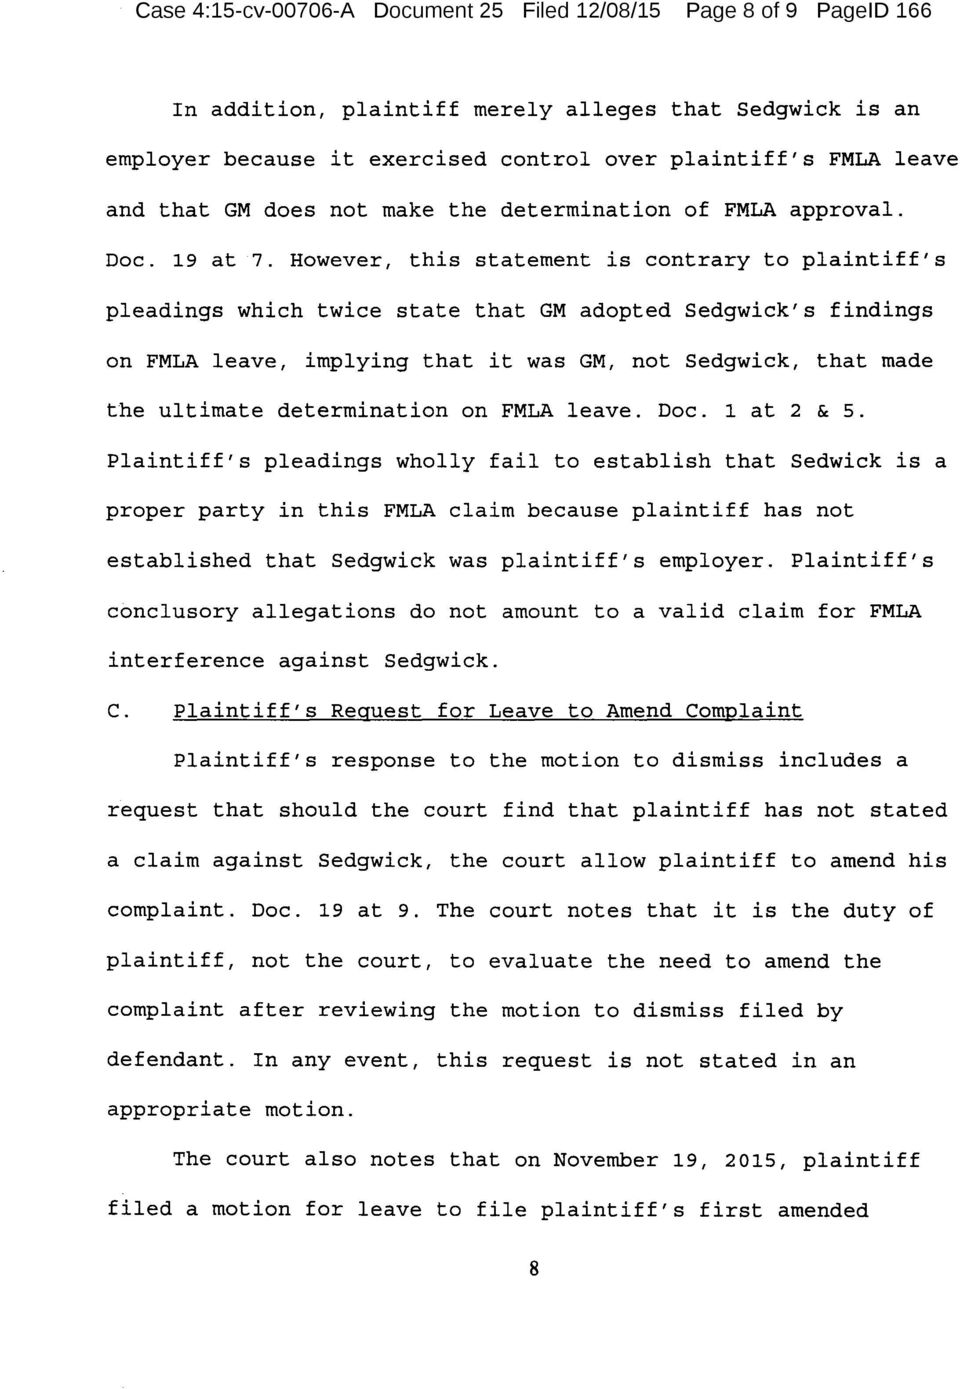 However, this statement is contrary to plaintiff's pleadings which twice state that GM adopted Sedgwick's findings on FMLA leave, implying that it was GM, not Sedgwick, that made the ultimate